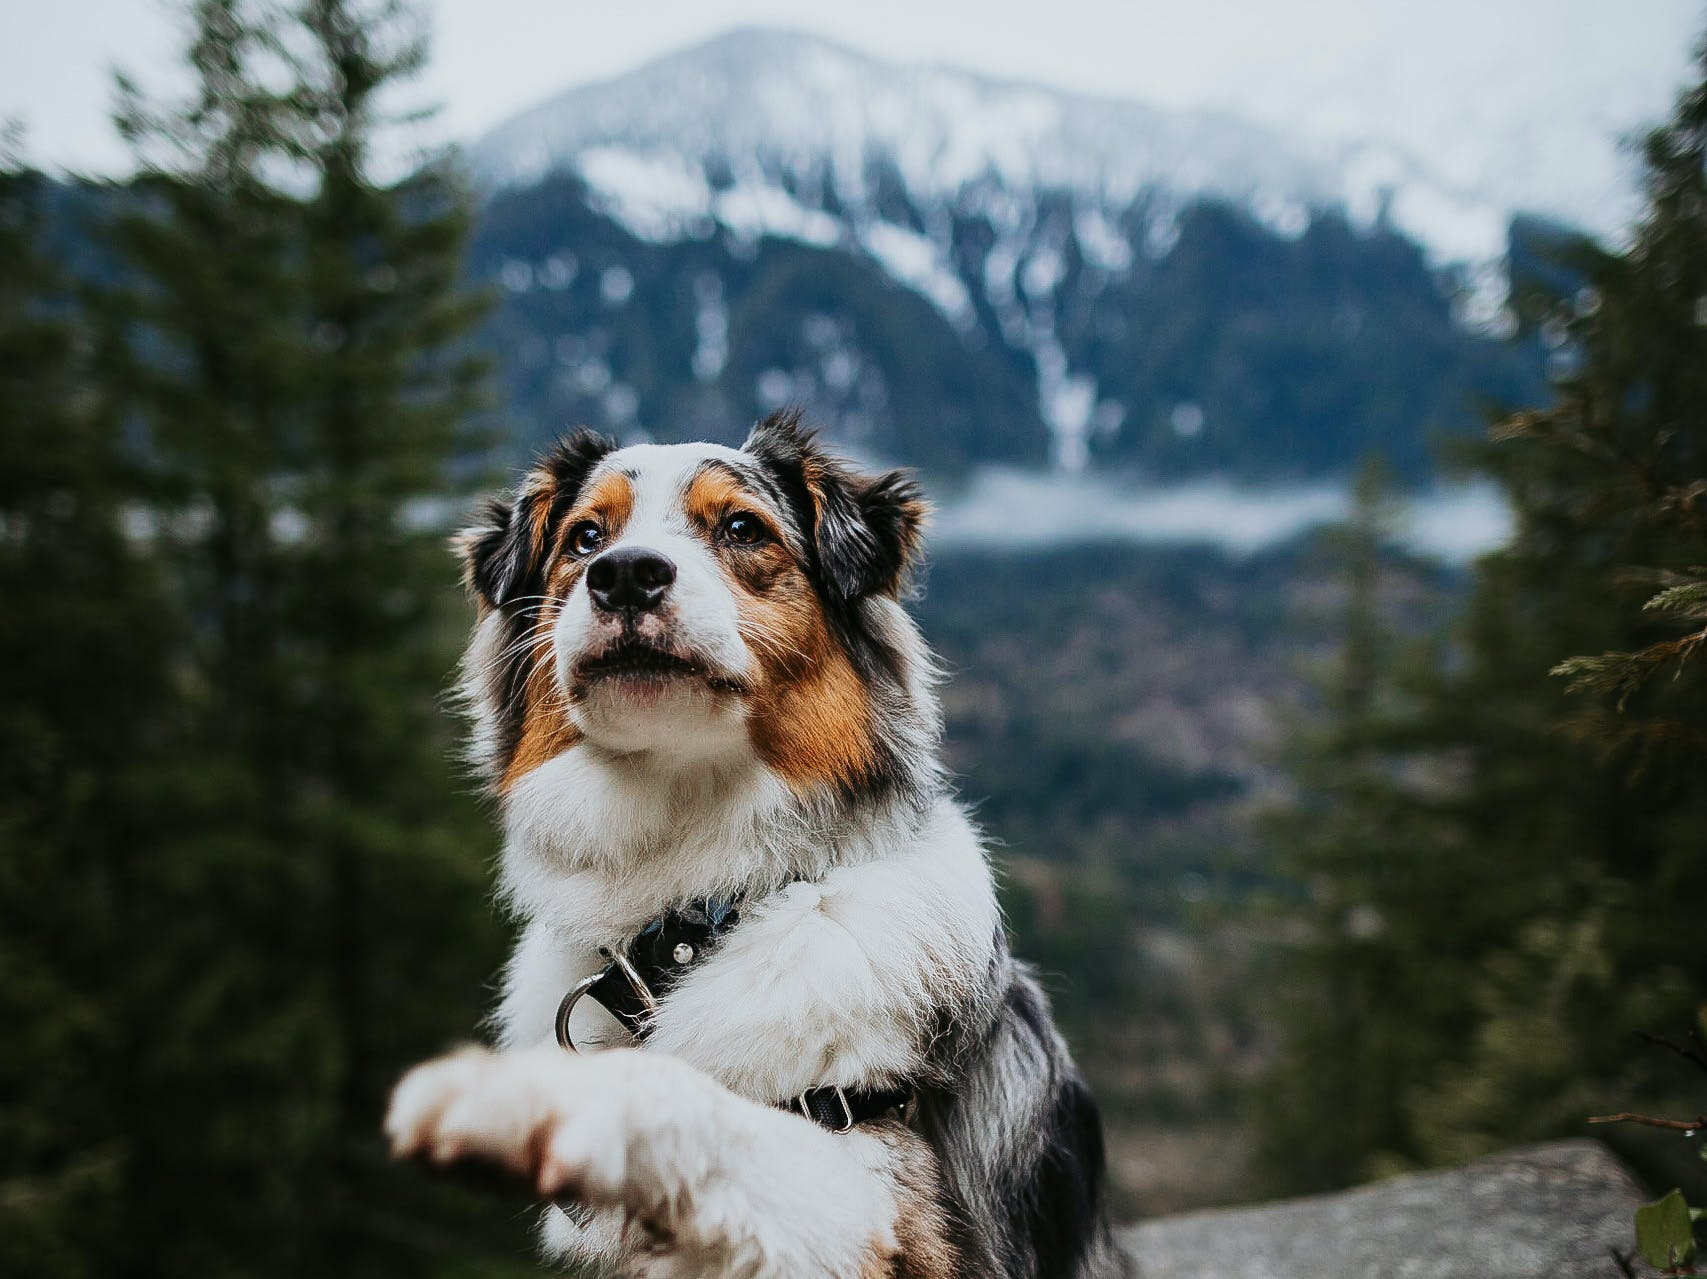 Australian Shepherd named Koda shakes for the camera while standing amidst the North Cascades mountains